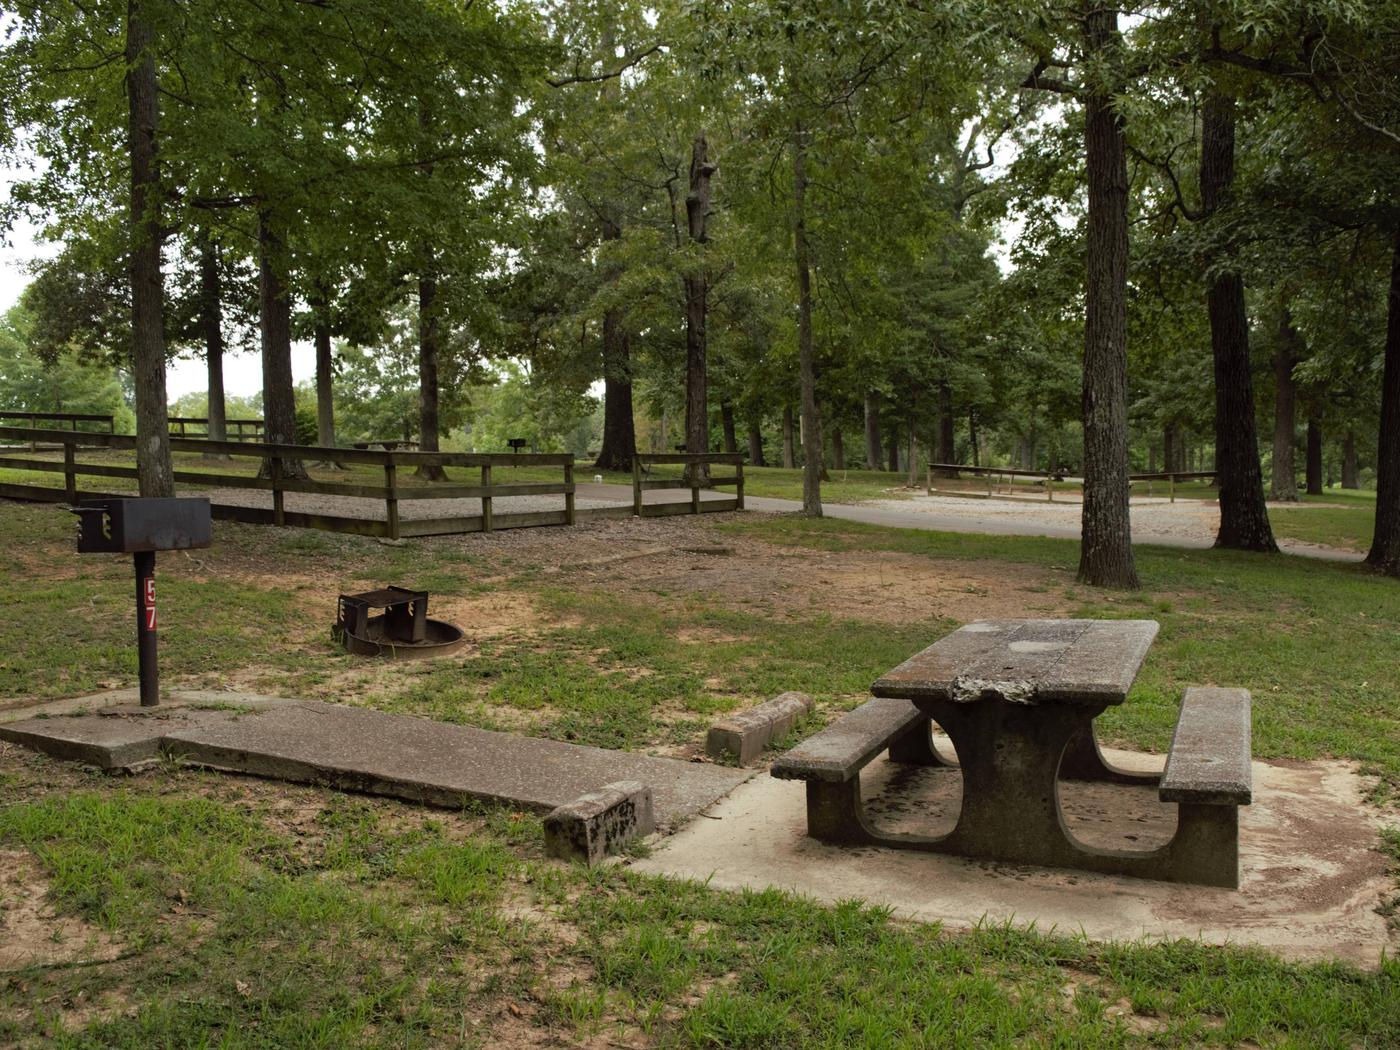 WILLOW GROVE CAMPGROUND SITE #57